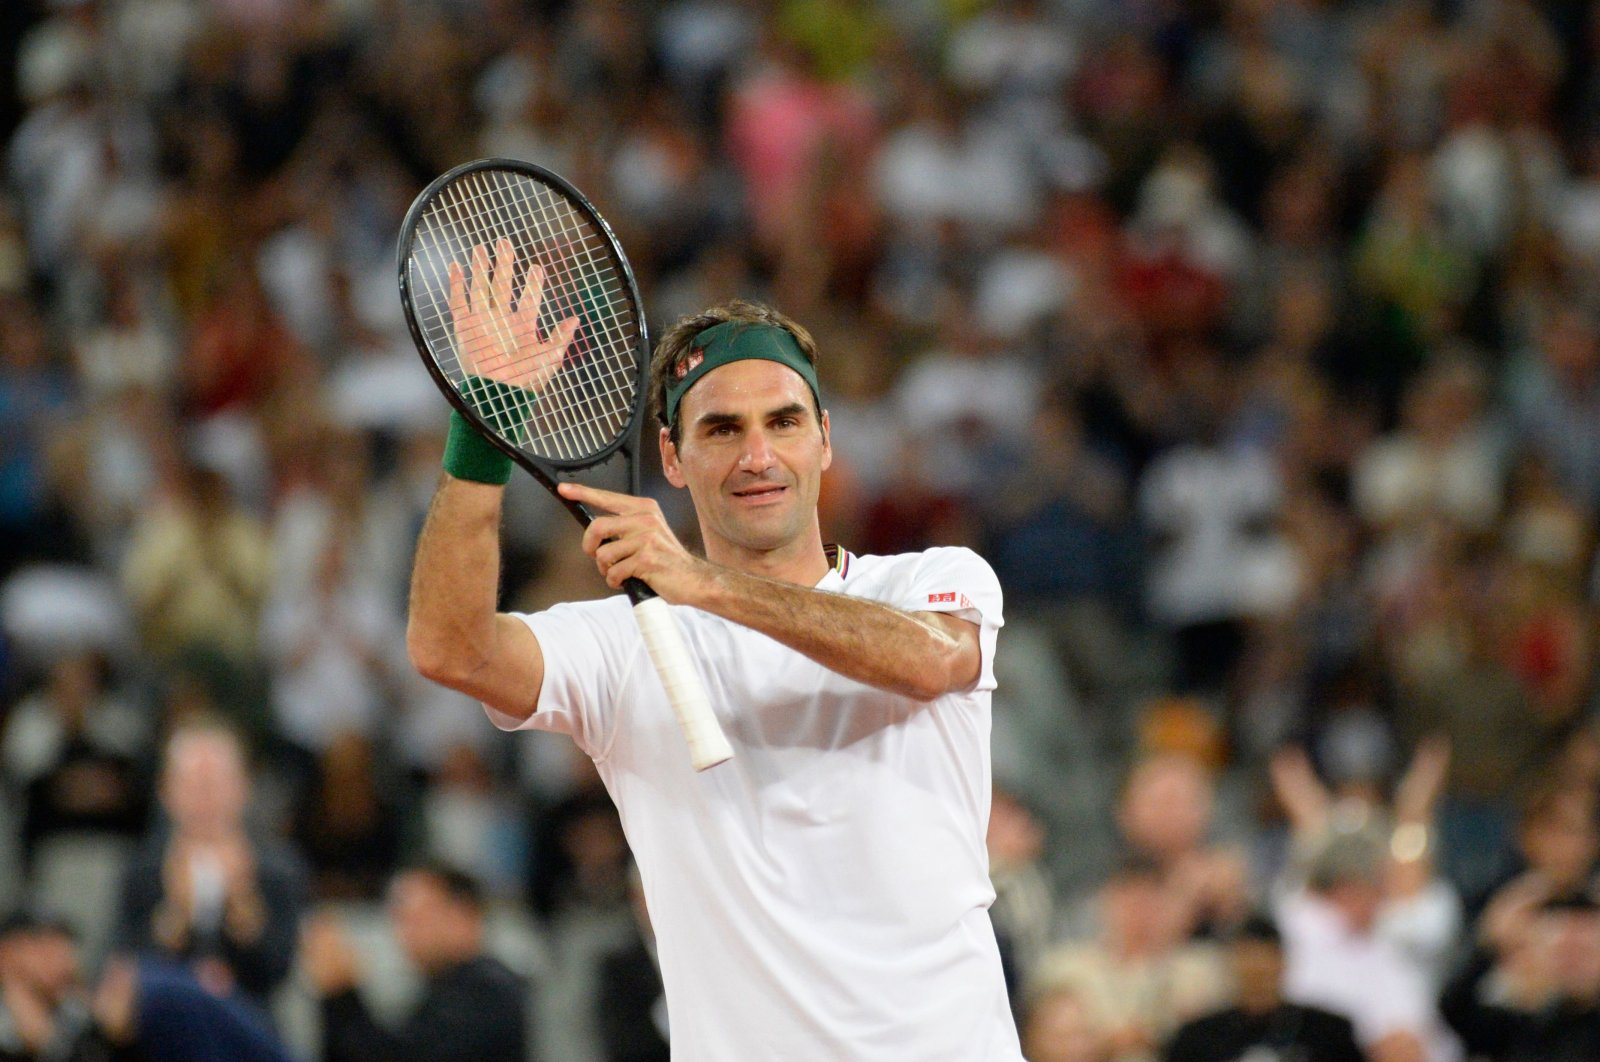 Roger Federer reacts after defeating Rafael Nadal during an expedition match in Cape Town, South Africa, Feb. 7, 2020. (AFP Photo)